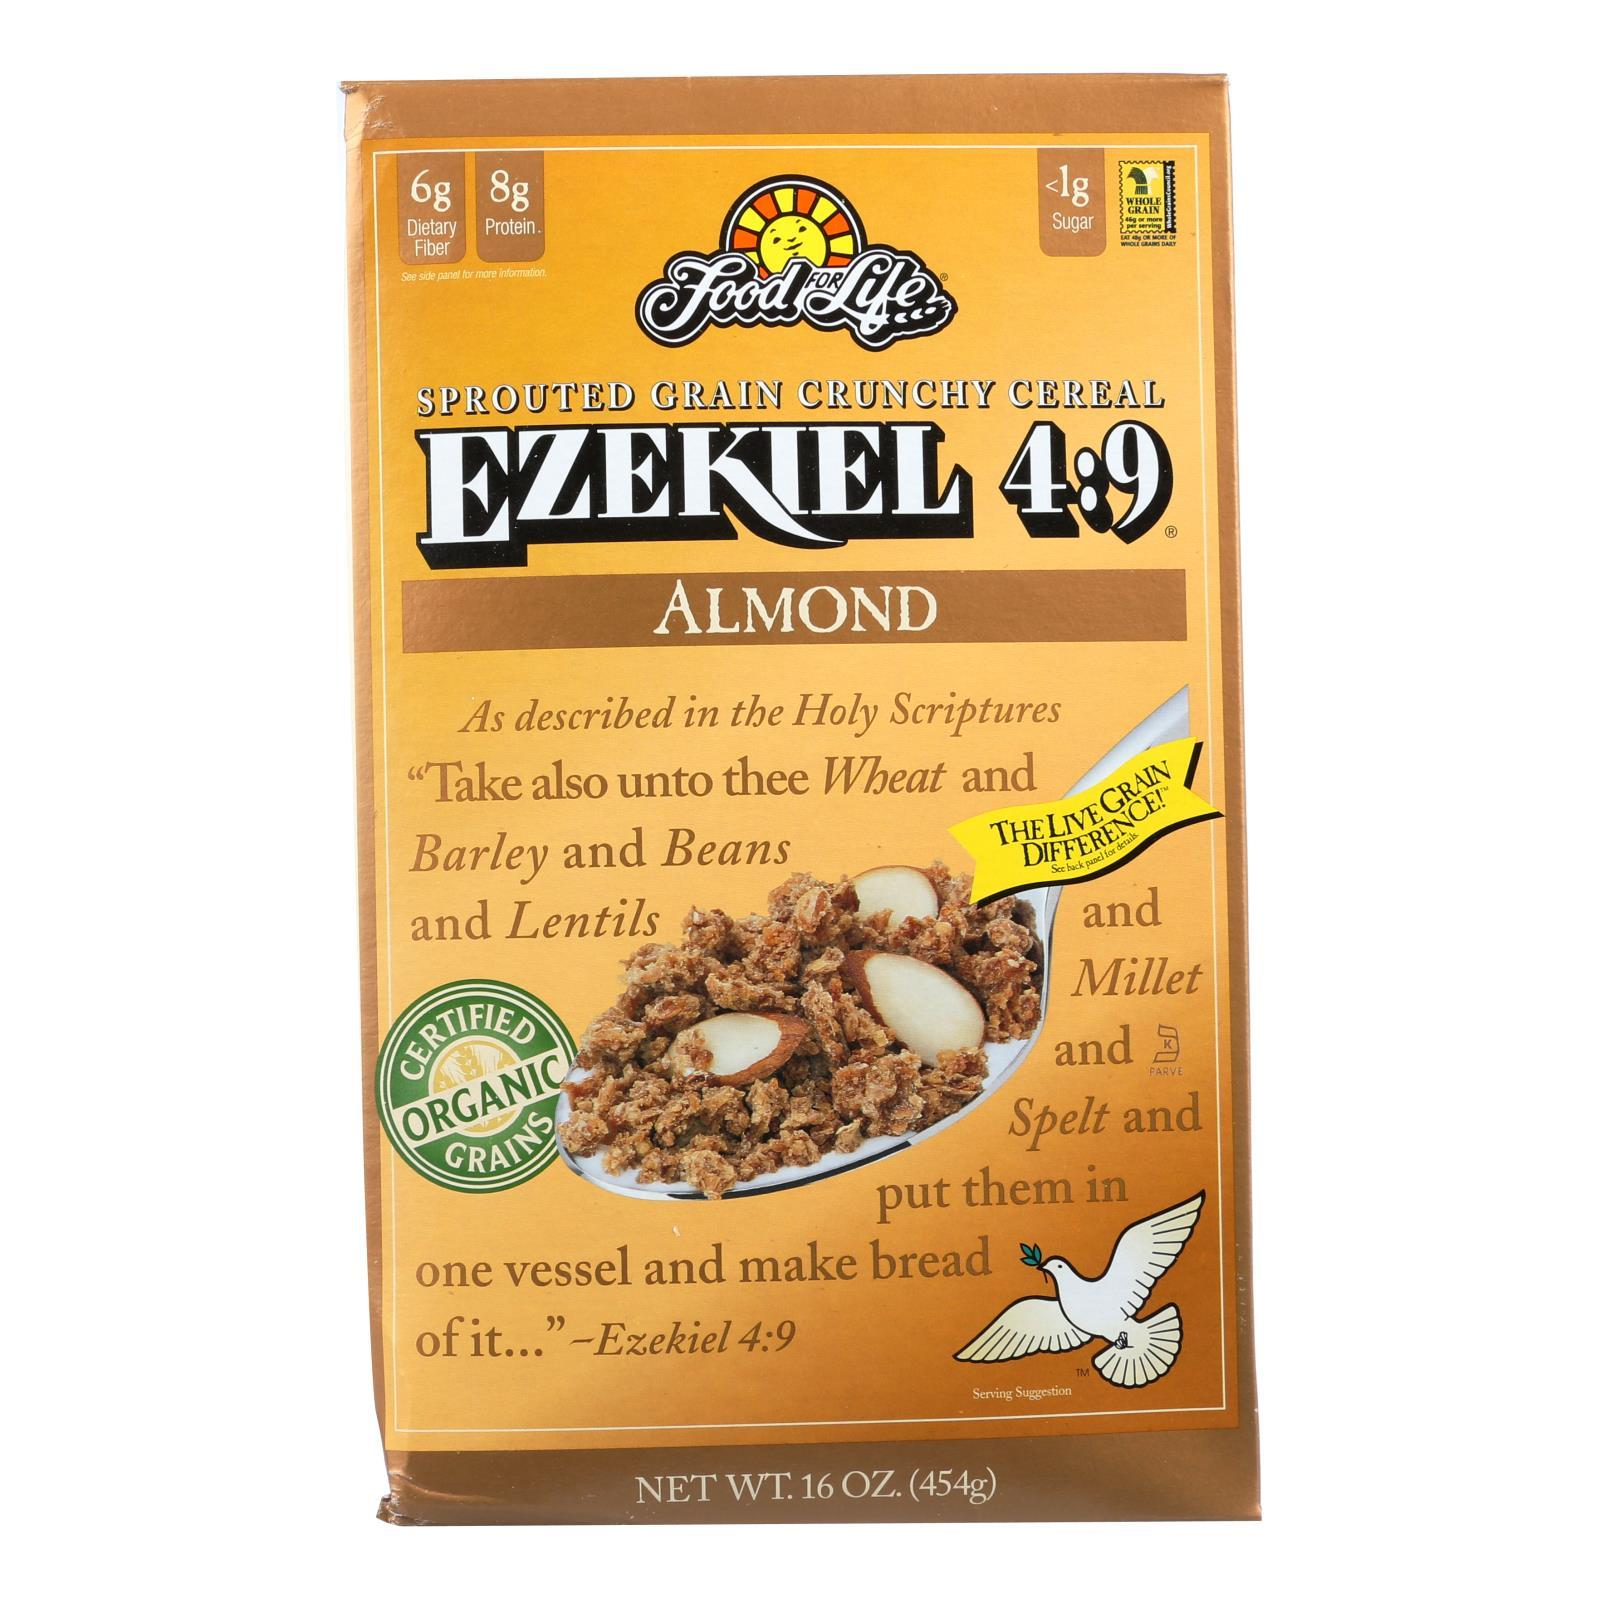 Food For Life Baking Co. Cereal - Organic - Ezekiel 4-9 - Sprouted Whole Grain - Almond - 16 Oz - Case Of 6 - BeeGreen